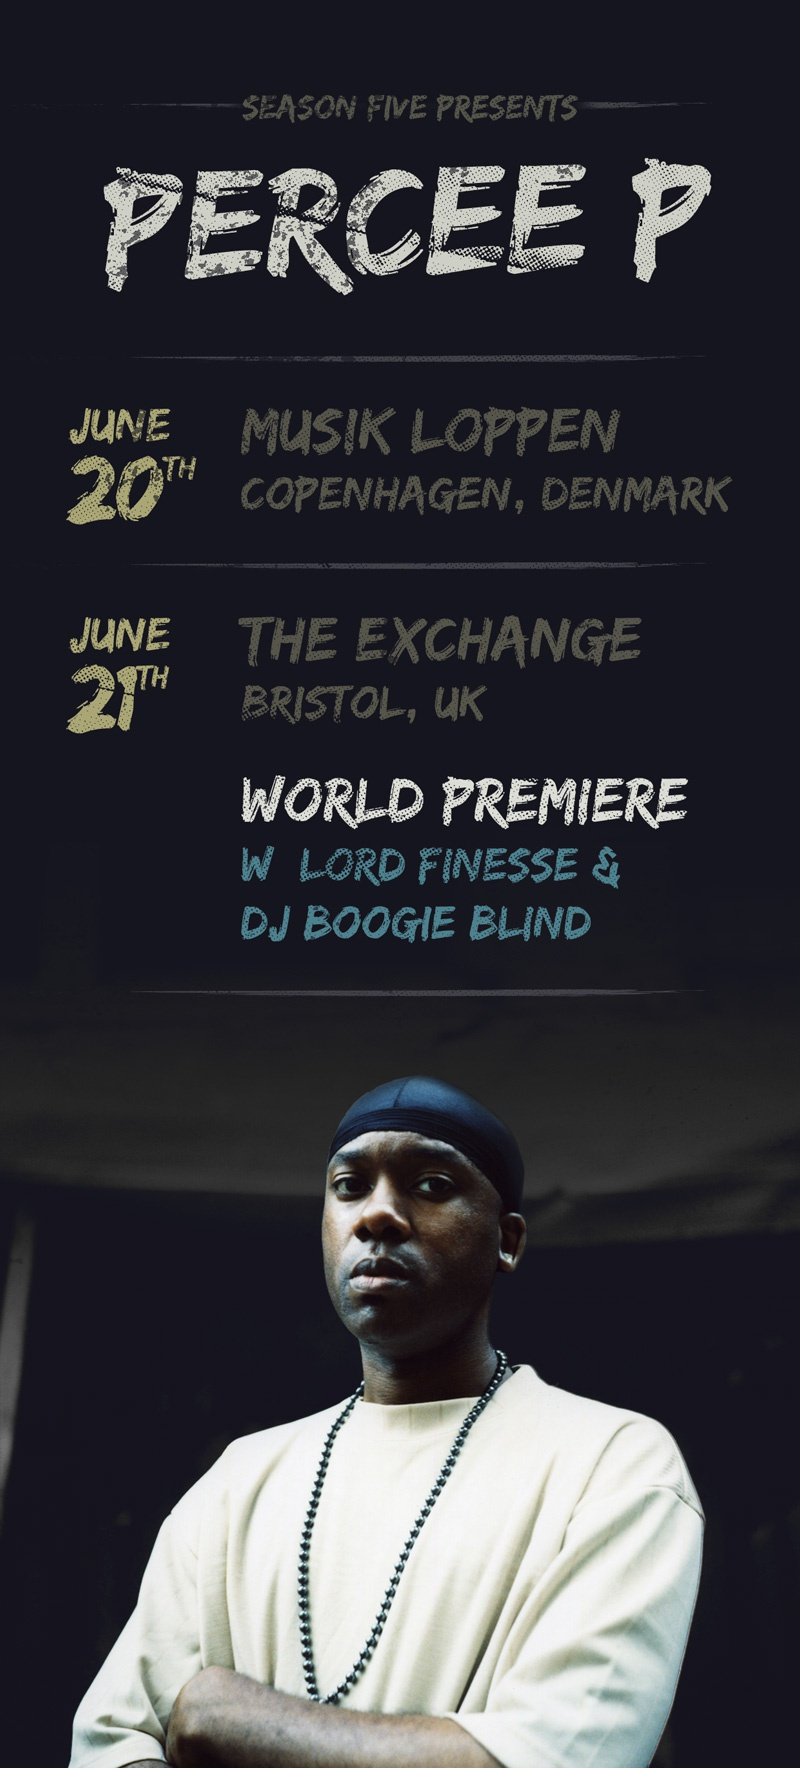 Percee p flyer